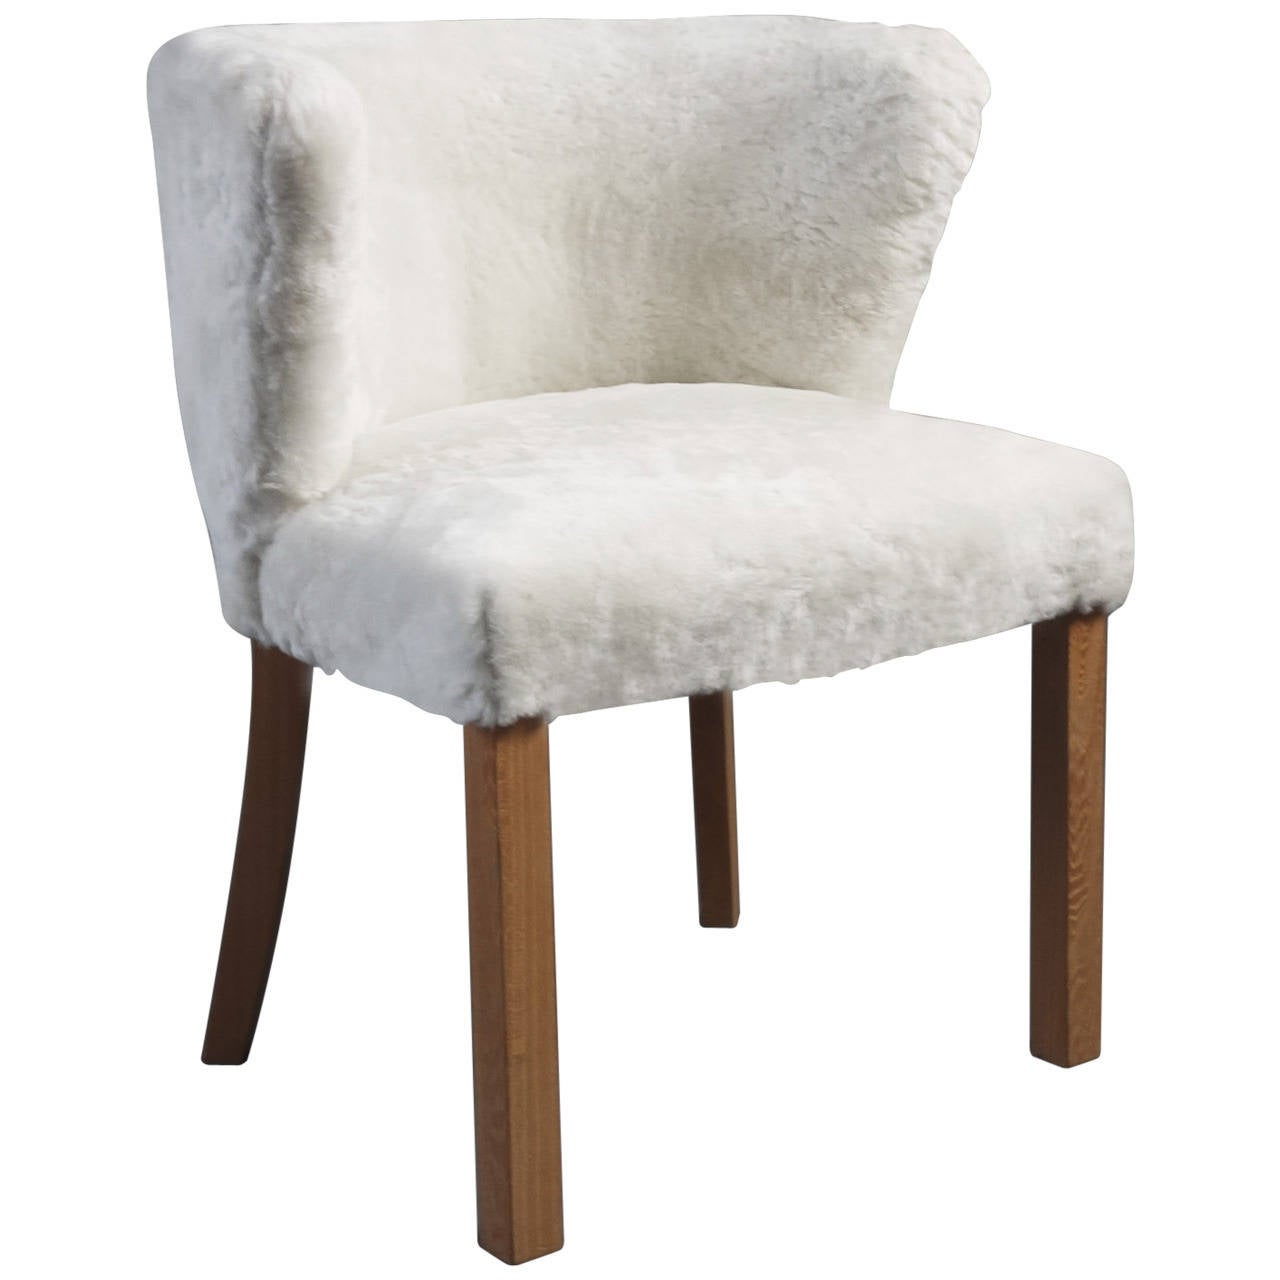 fritz hansen shearling upholstered armchair at 1stdibs. Black Bedroom Furniture Sets. Home Design Ideas